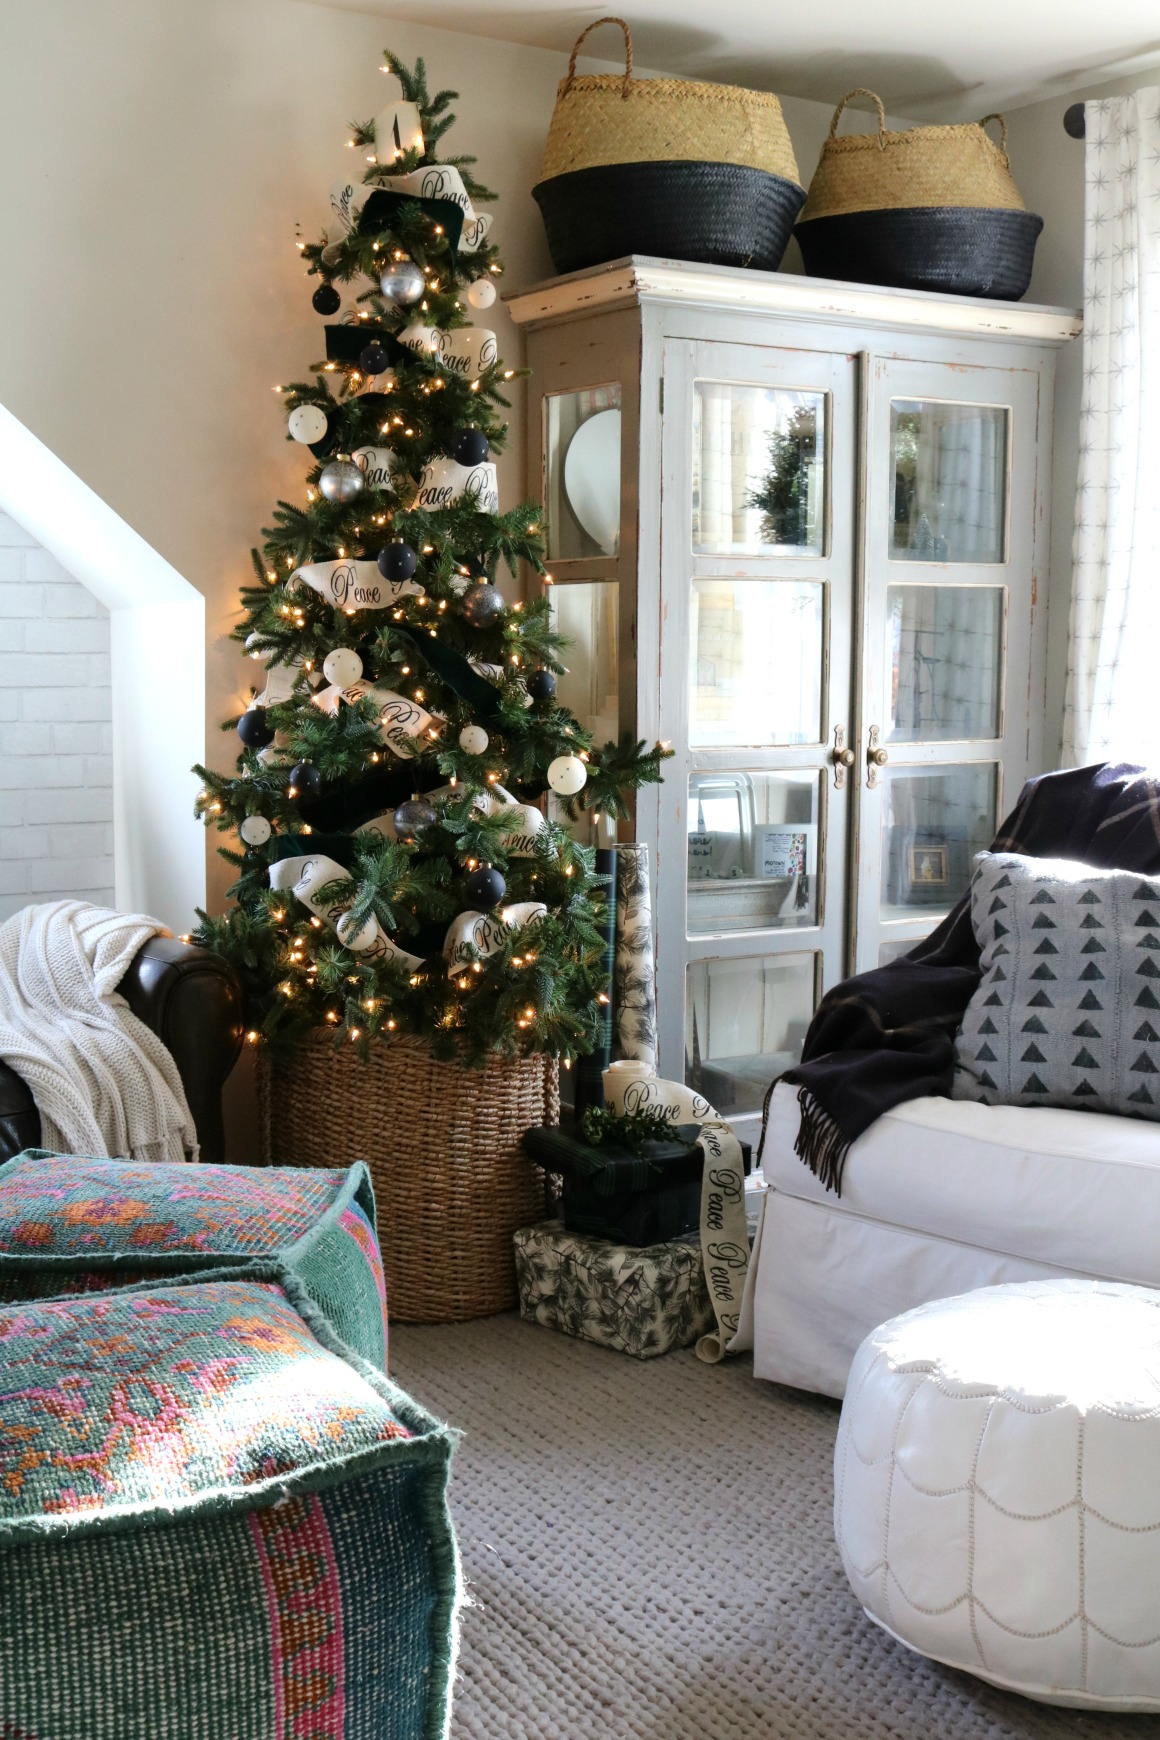 Christmas Decor in a Small Cape- Family Room